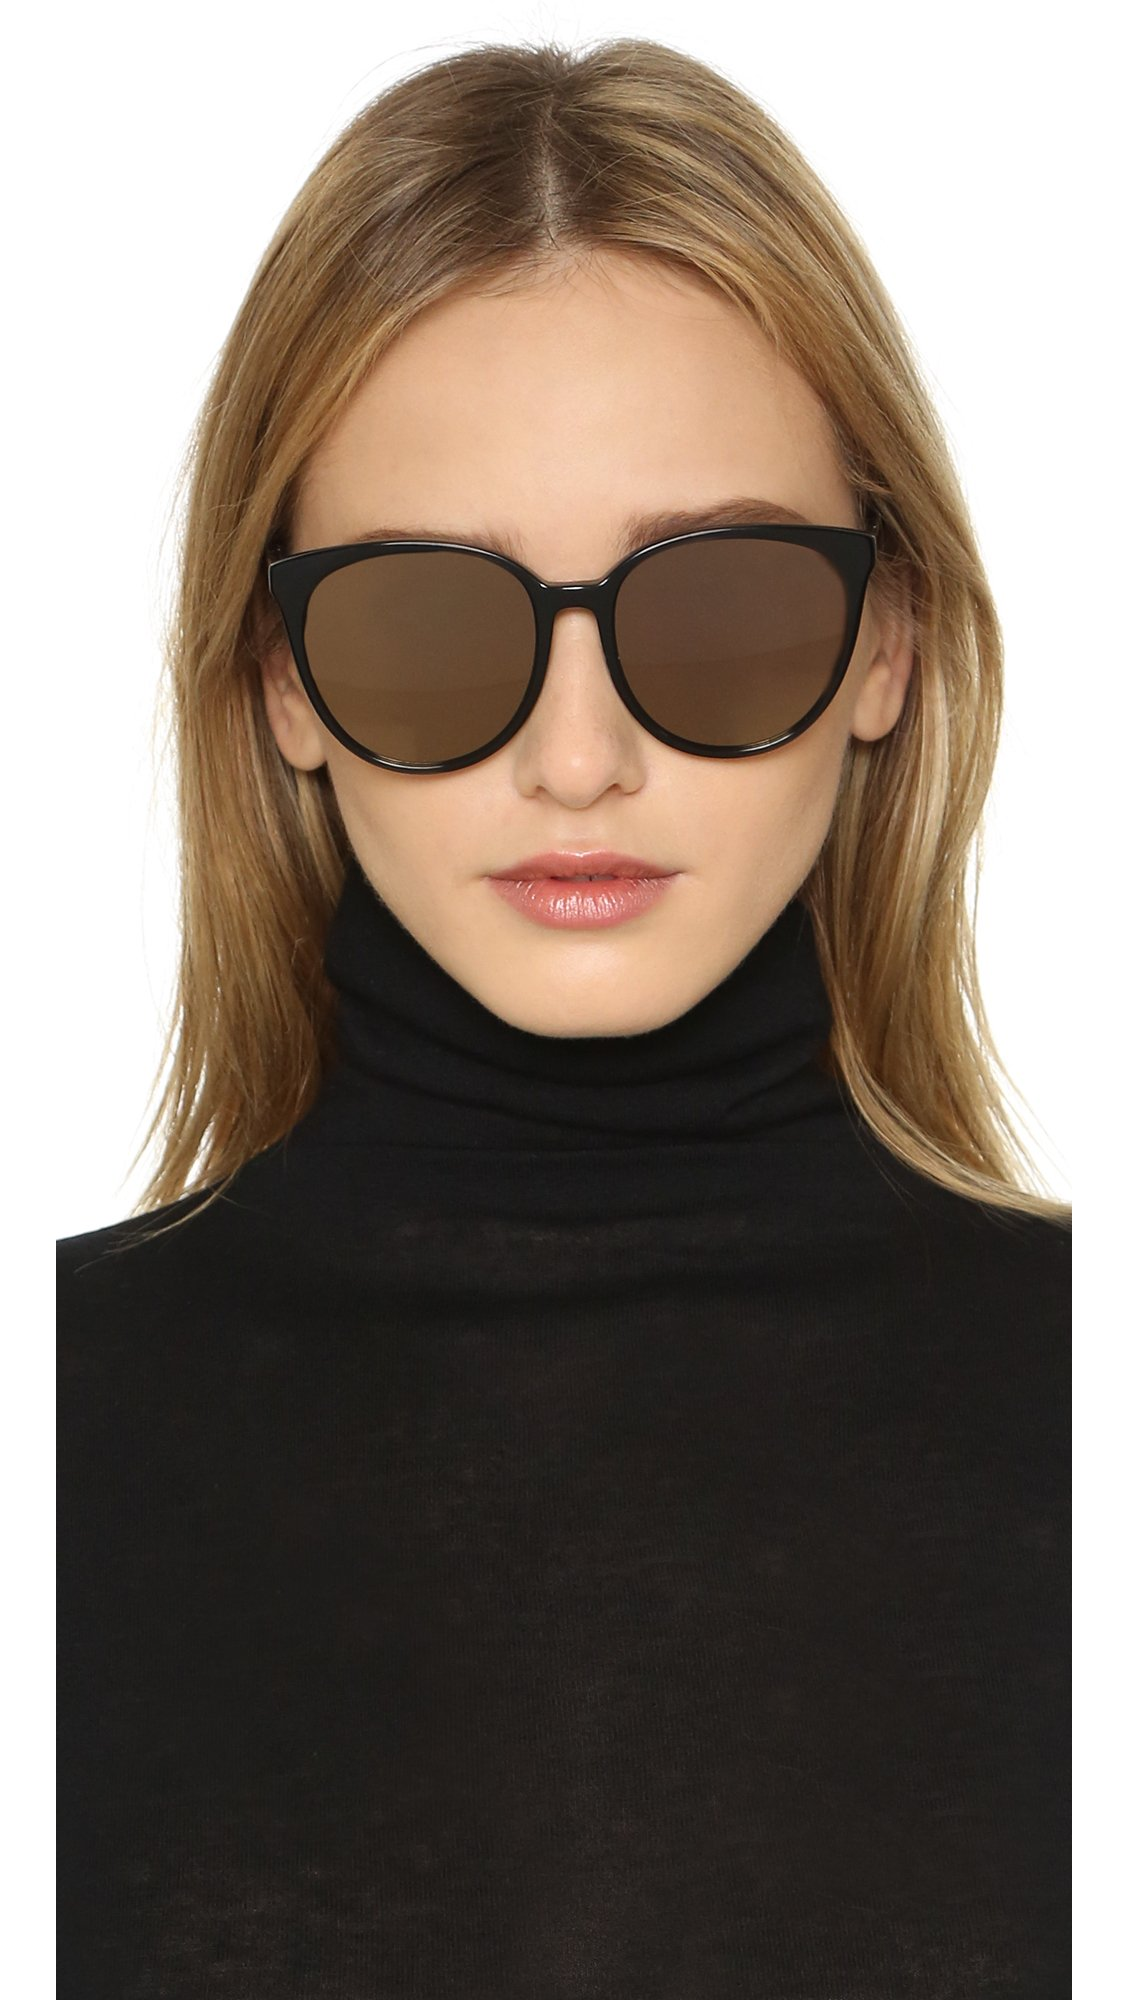 Sunday Somewhere Woman Round-frame Acetate Sunglasses White Size Sunday Somewhere 2018 Newest Sale Online Clearance Cheap Online Best Place Online wdIU2YKax